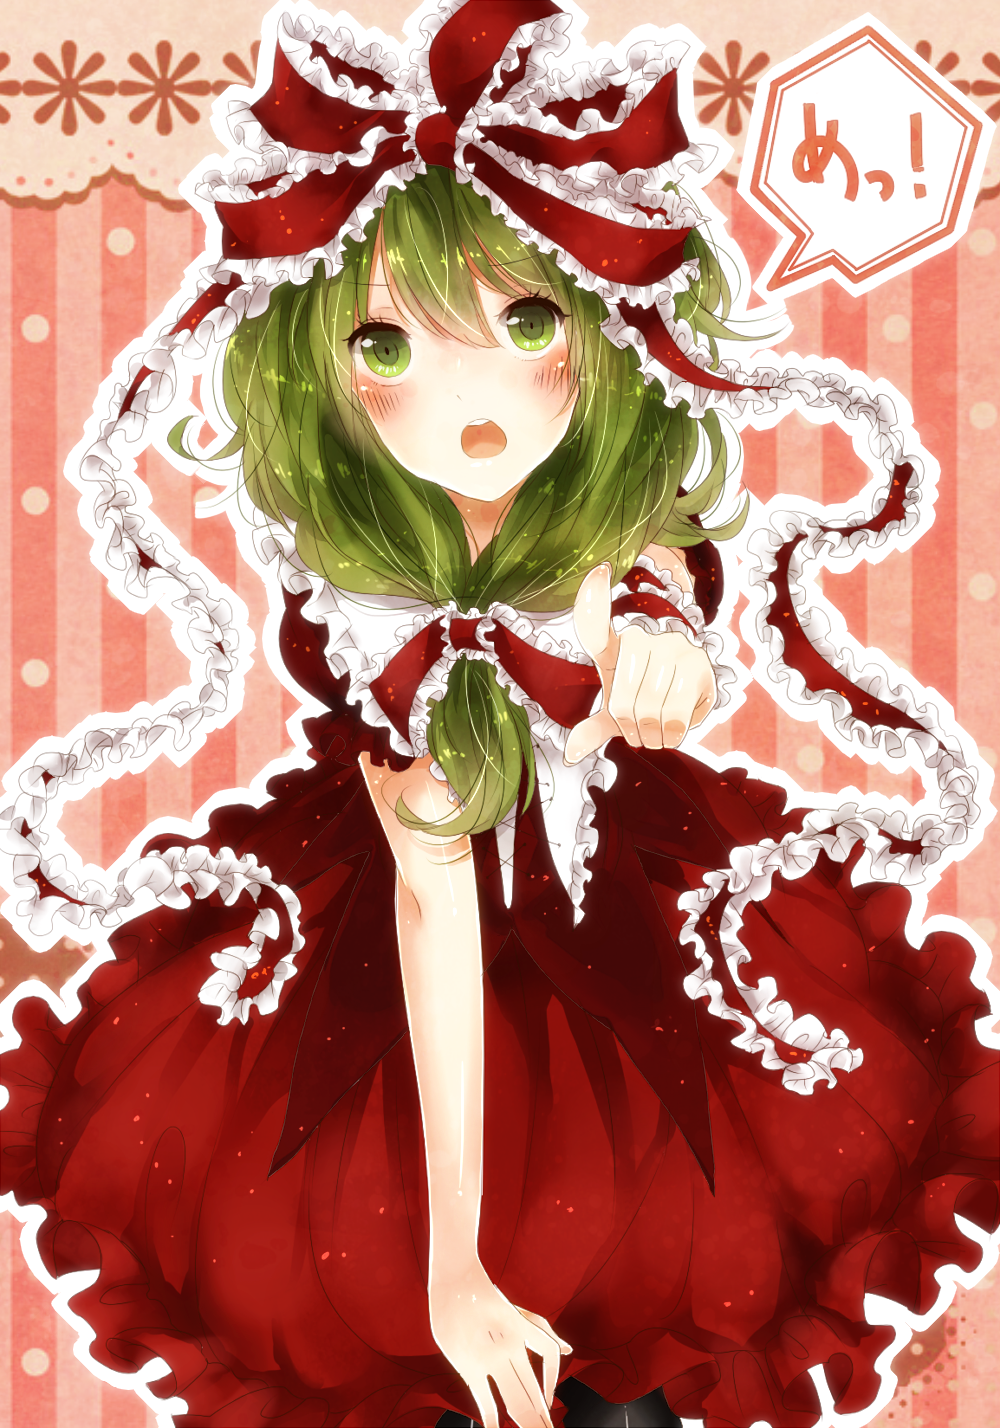 817nono black_legwear blush bow dress front_ponytail green_eyes green_hair hair_bow hair_ornament hair_ribbon highres kagiyama_hina long_hair looking_at_viewer open_mouth pantyhose pointing red_dress ribbon solo striped striped_background touhou